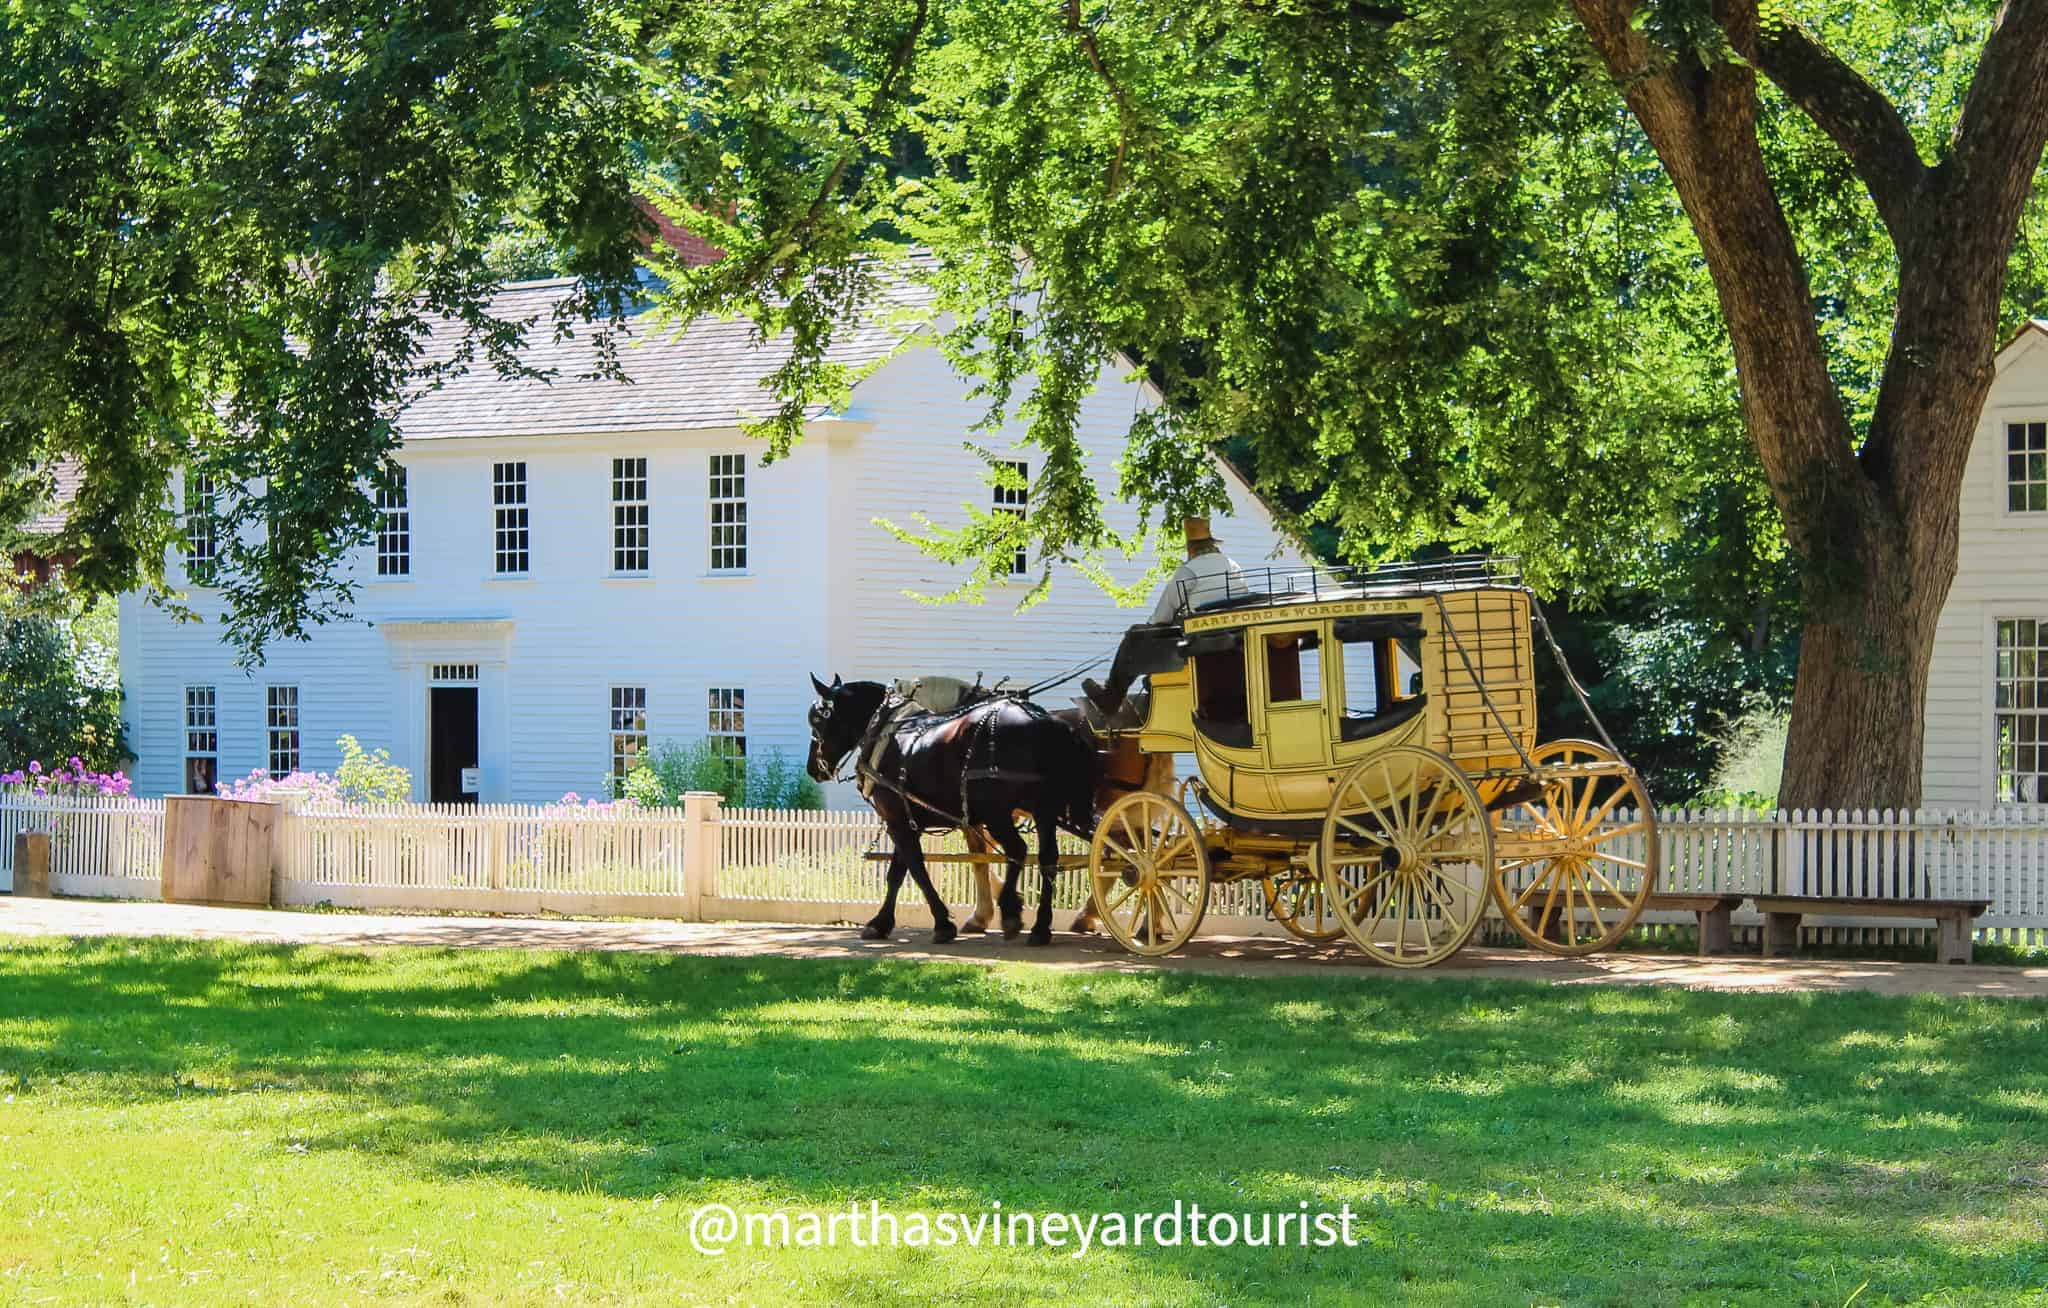 houses and carriage at Old Sturbridge Village in Massachusetts